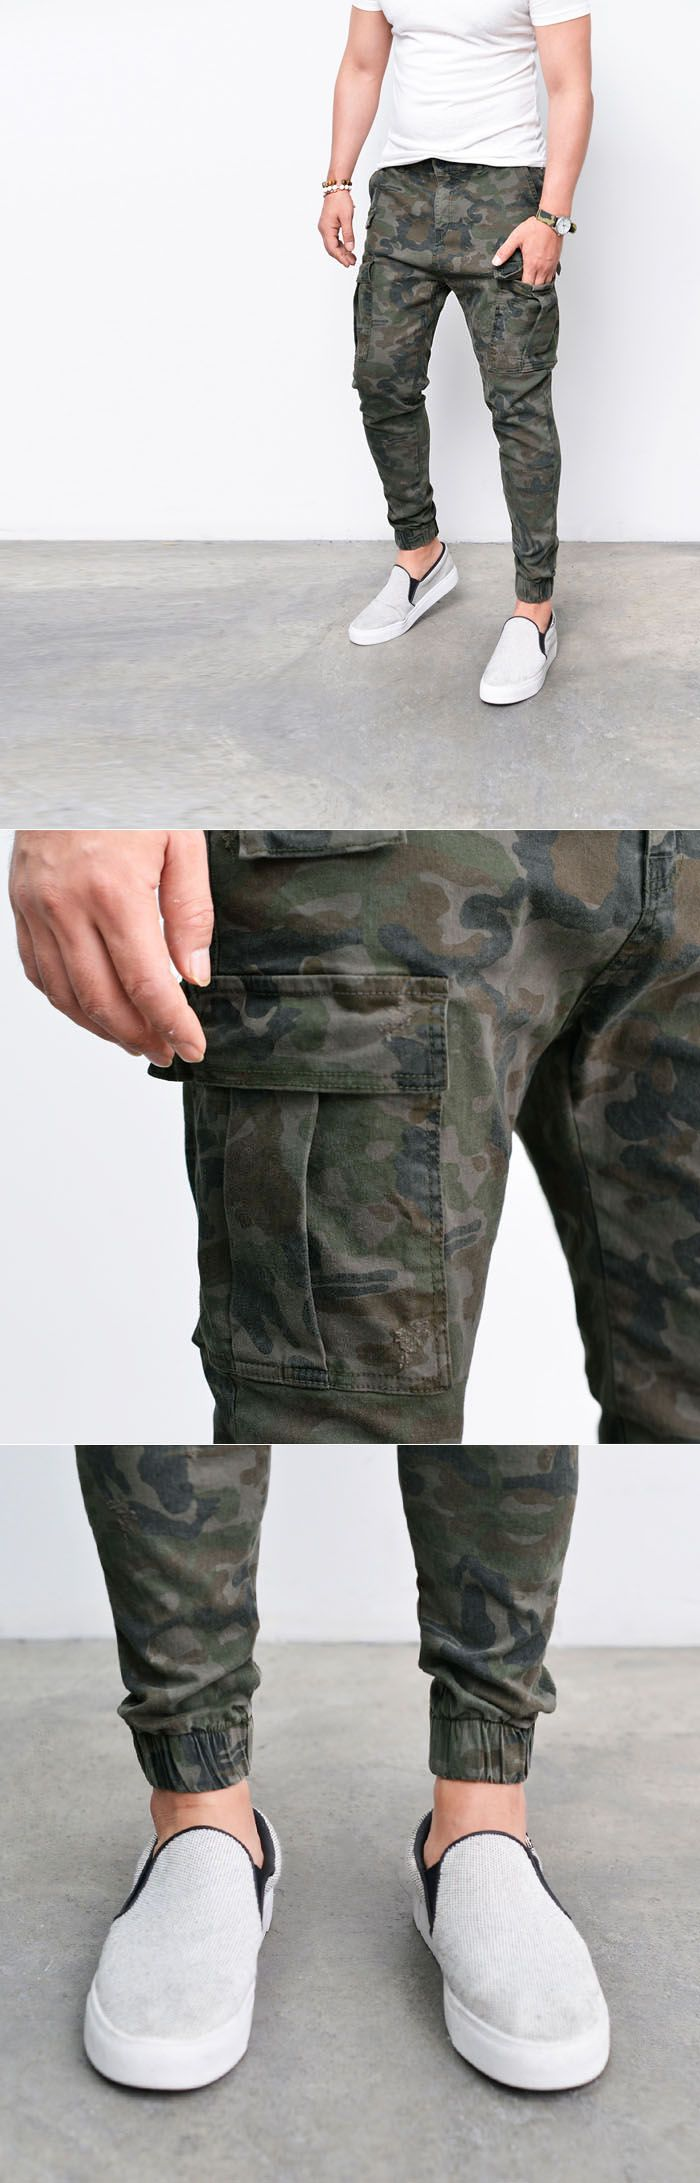 Bottoms :: Camouflage Semi Cargo Biker Jogger-Pants 192 - Mens Fashion Clothing For An Attractive Guy Look